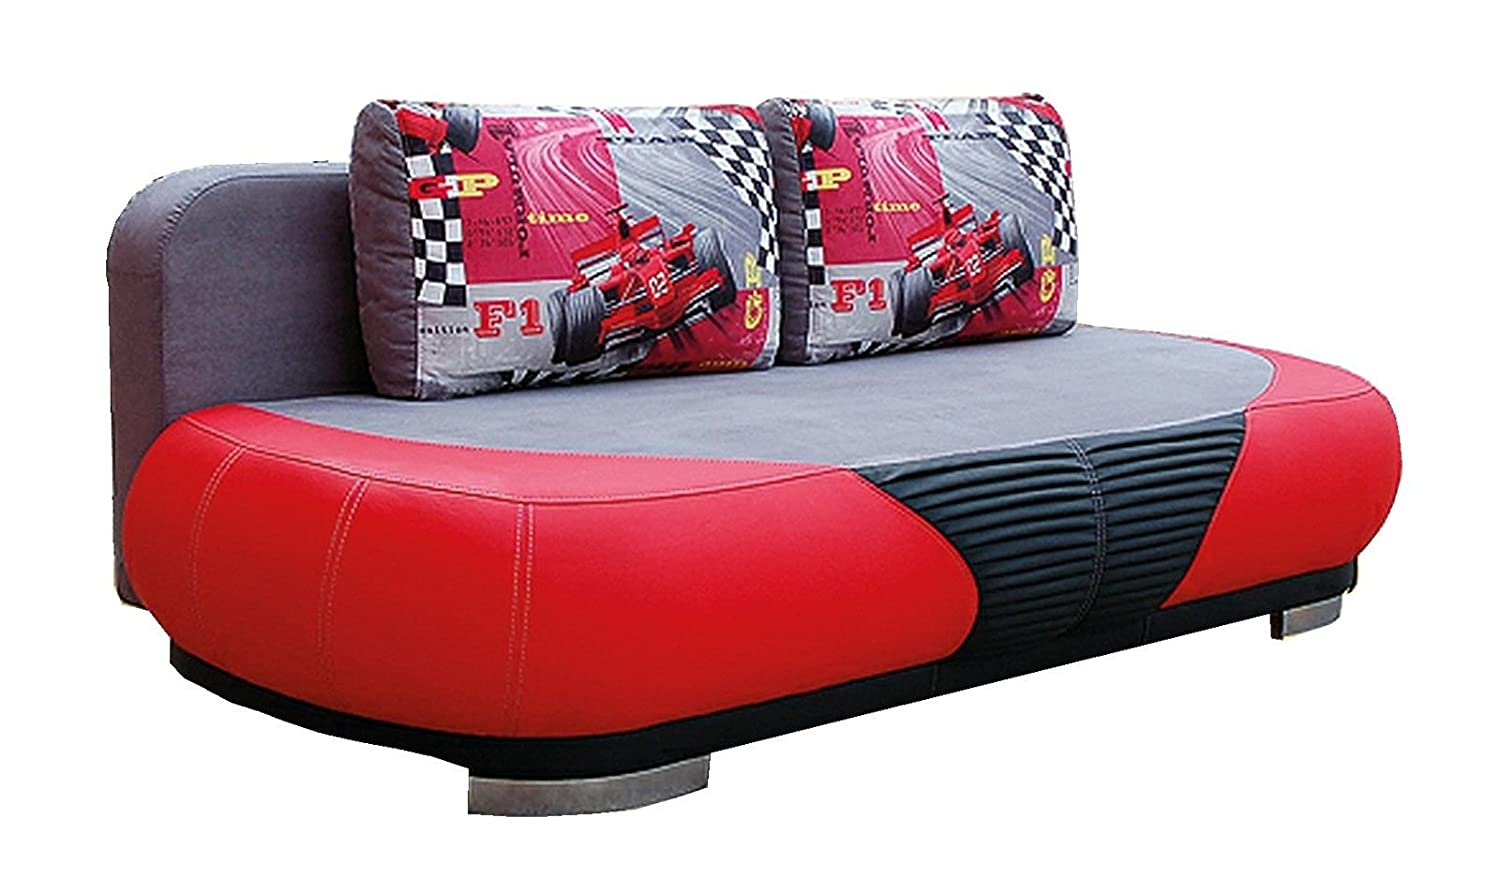 Sofa Schlafsofa Funktions-Sofa RACING rot-grau EXCLUSIV bei uns kaufen